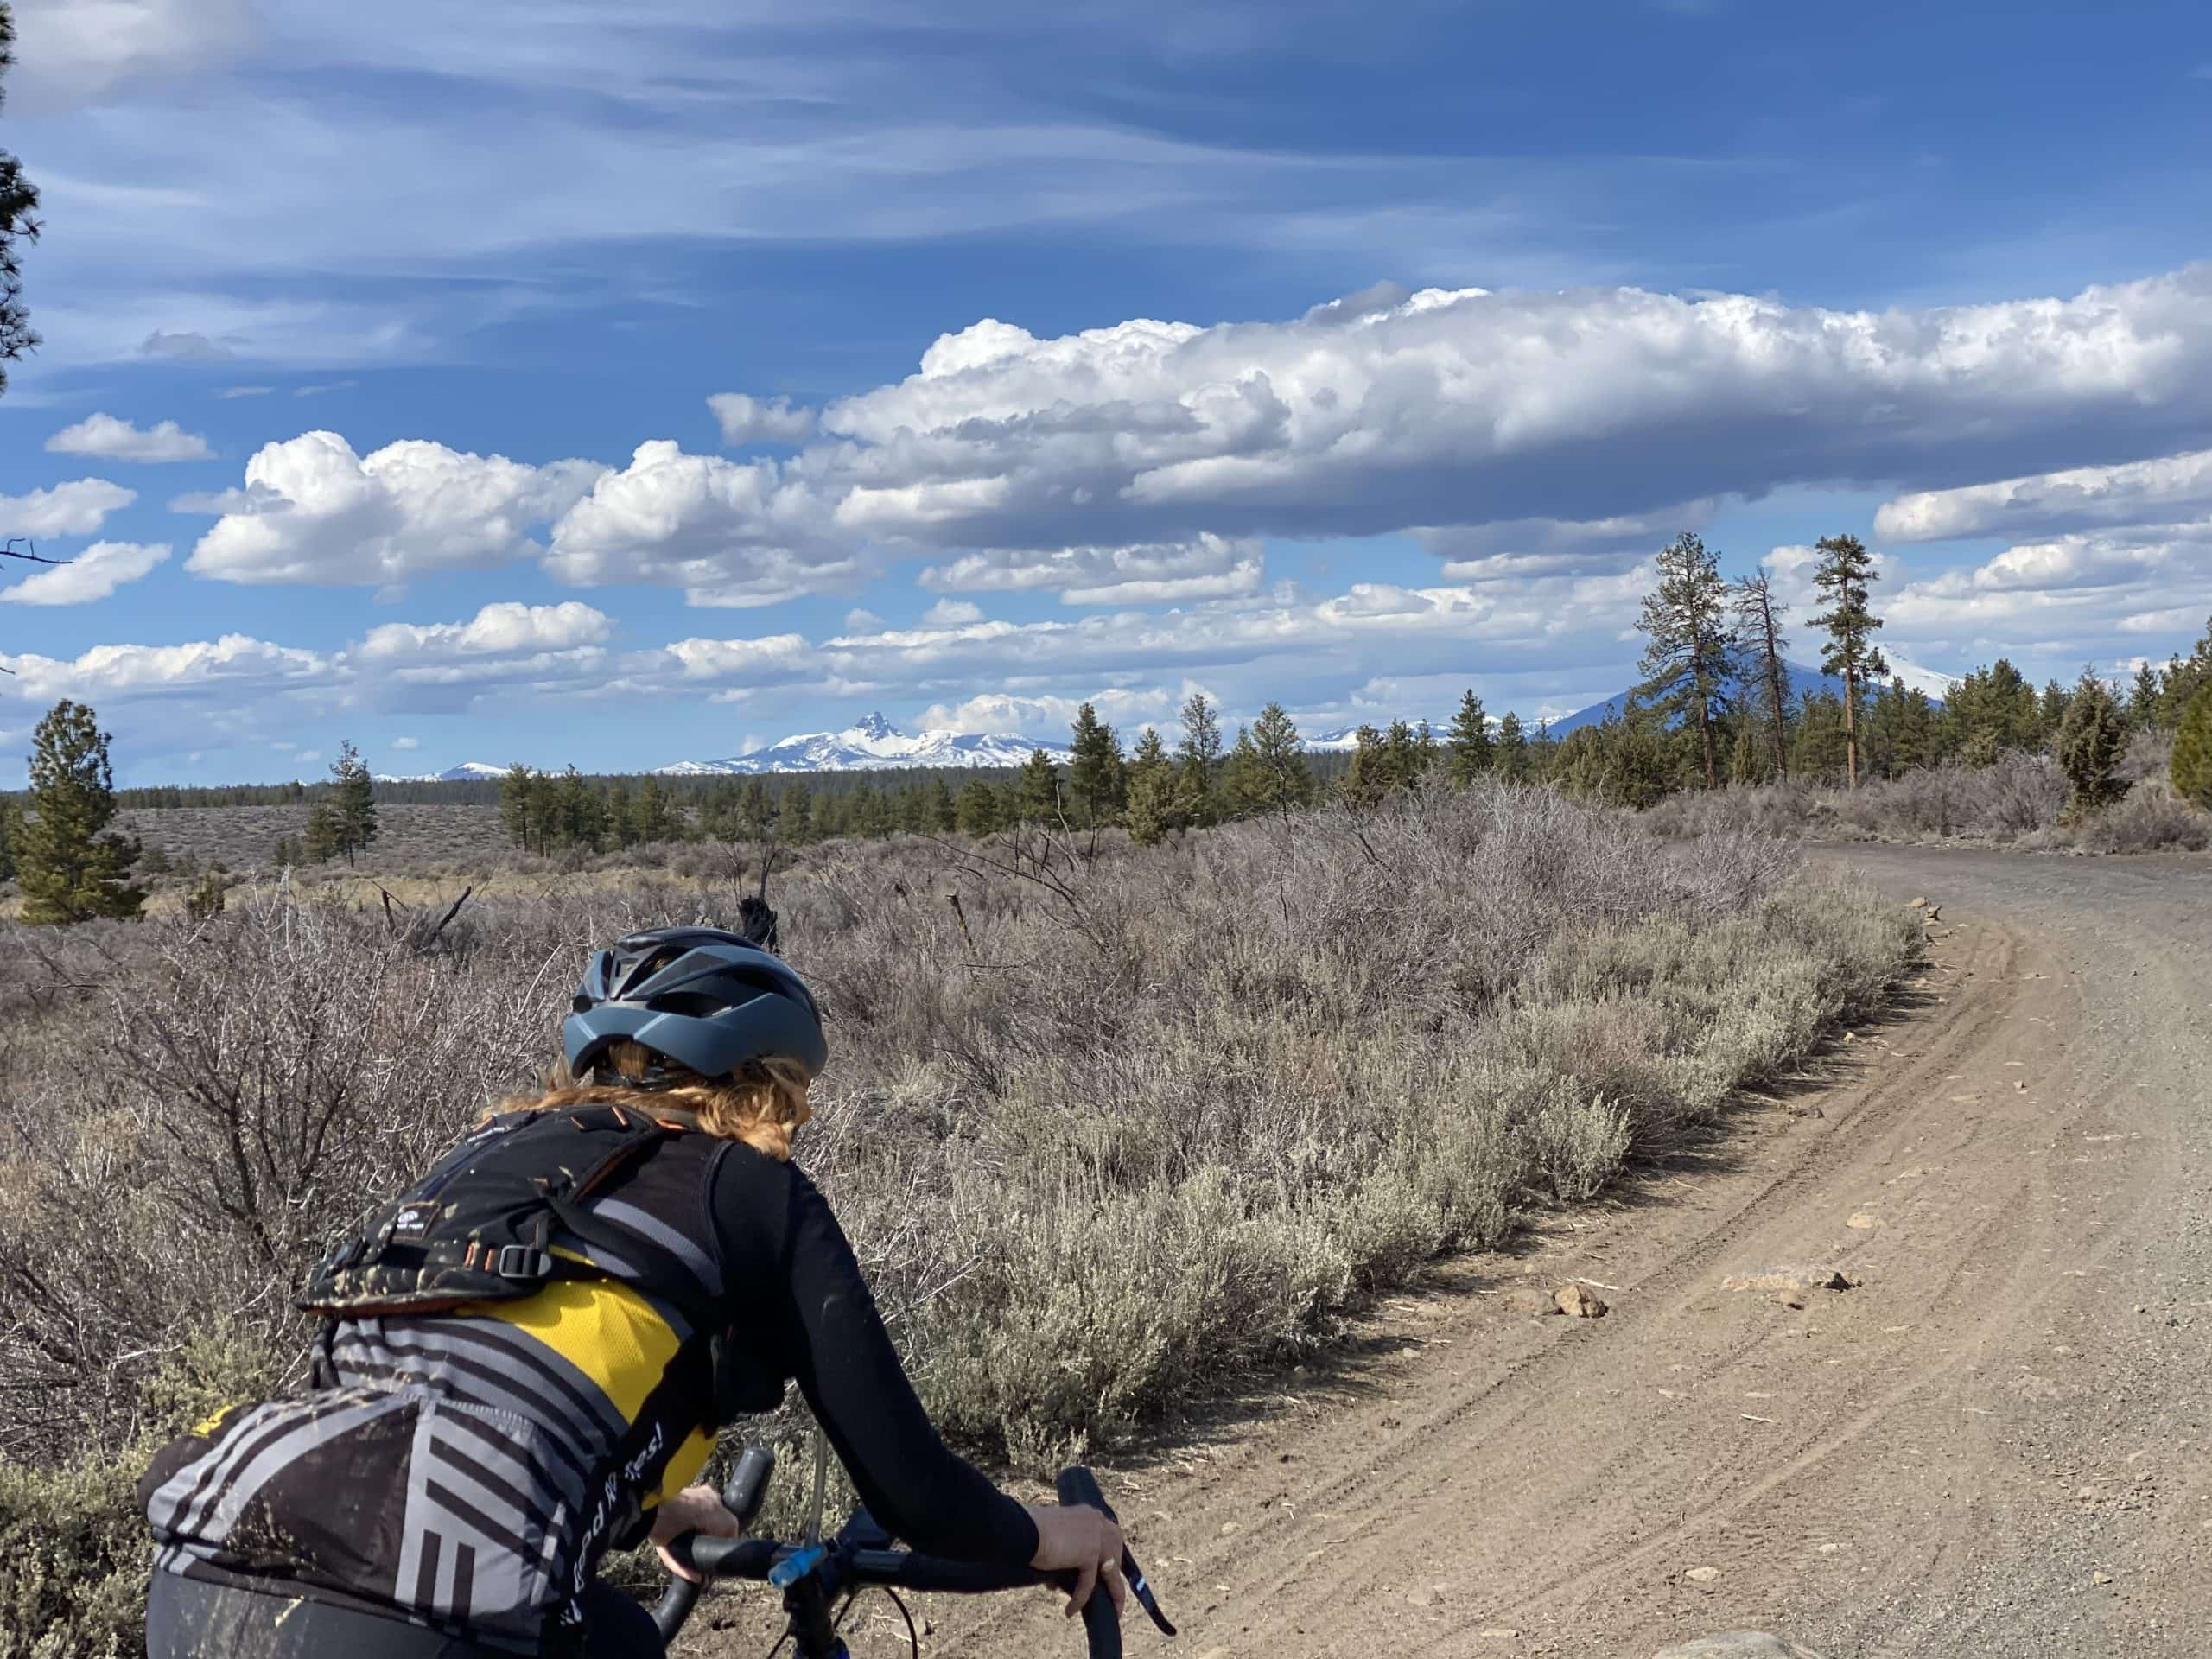 Gravel cyclist on dirt road with Mt Washington and Black Butte in the distance.